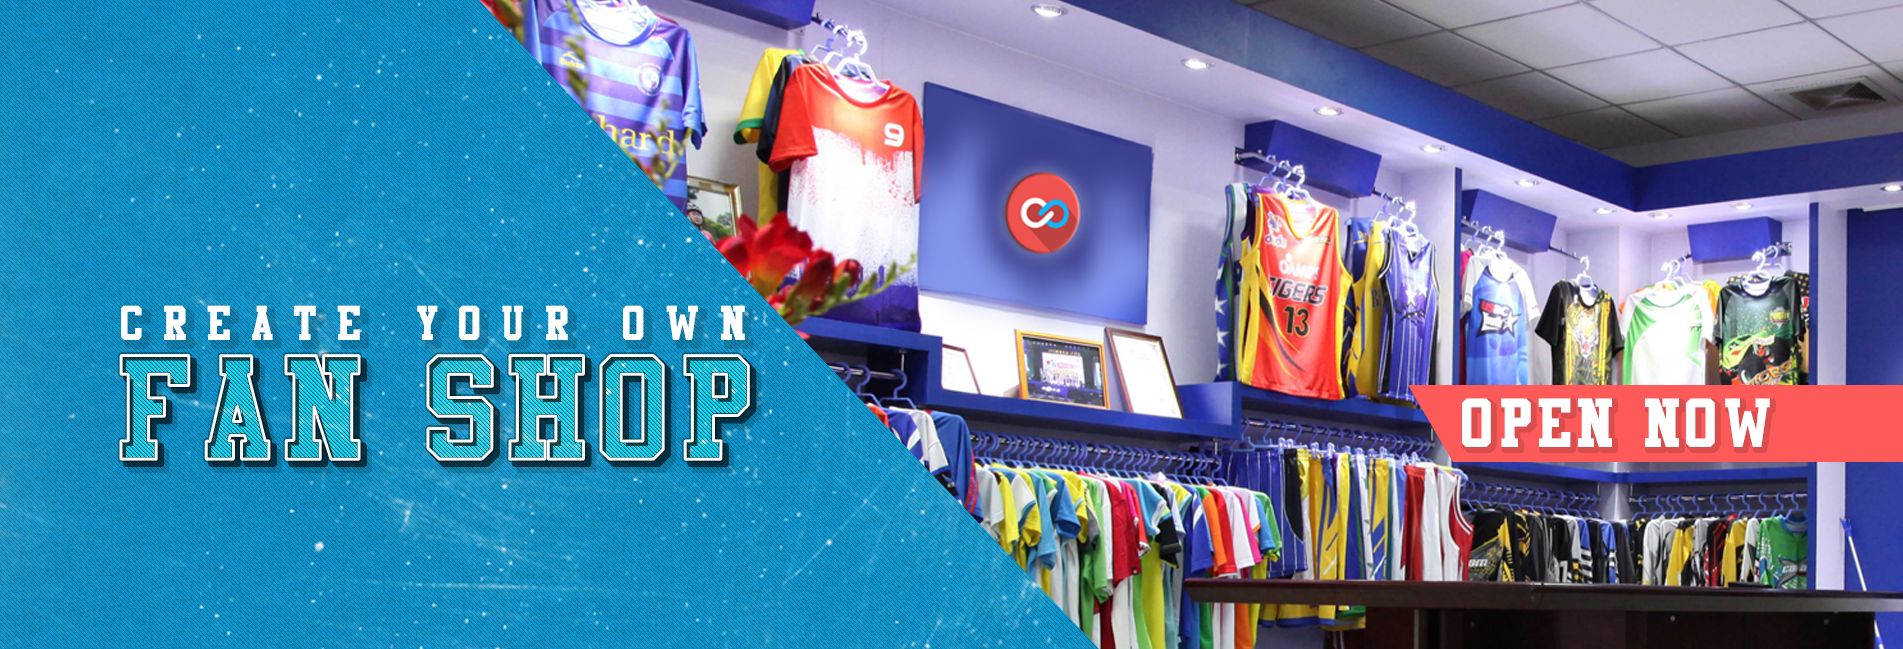 Create Your Own Fan Shop